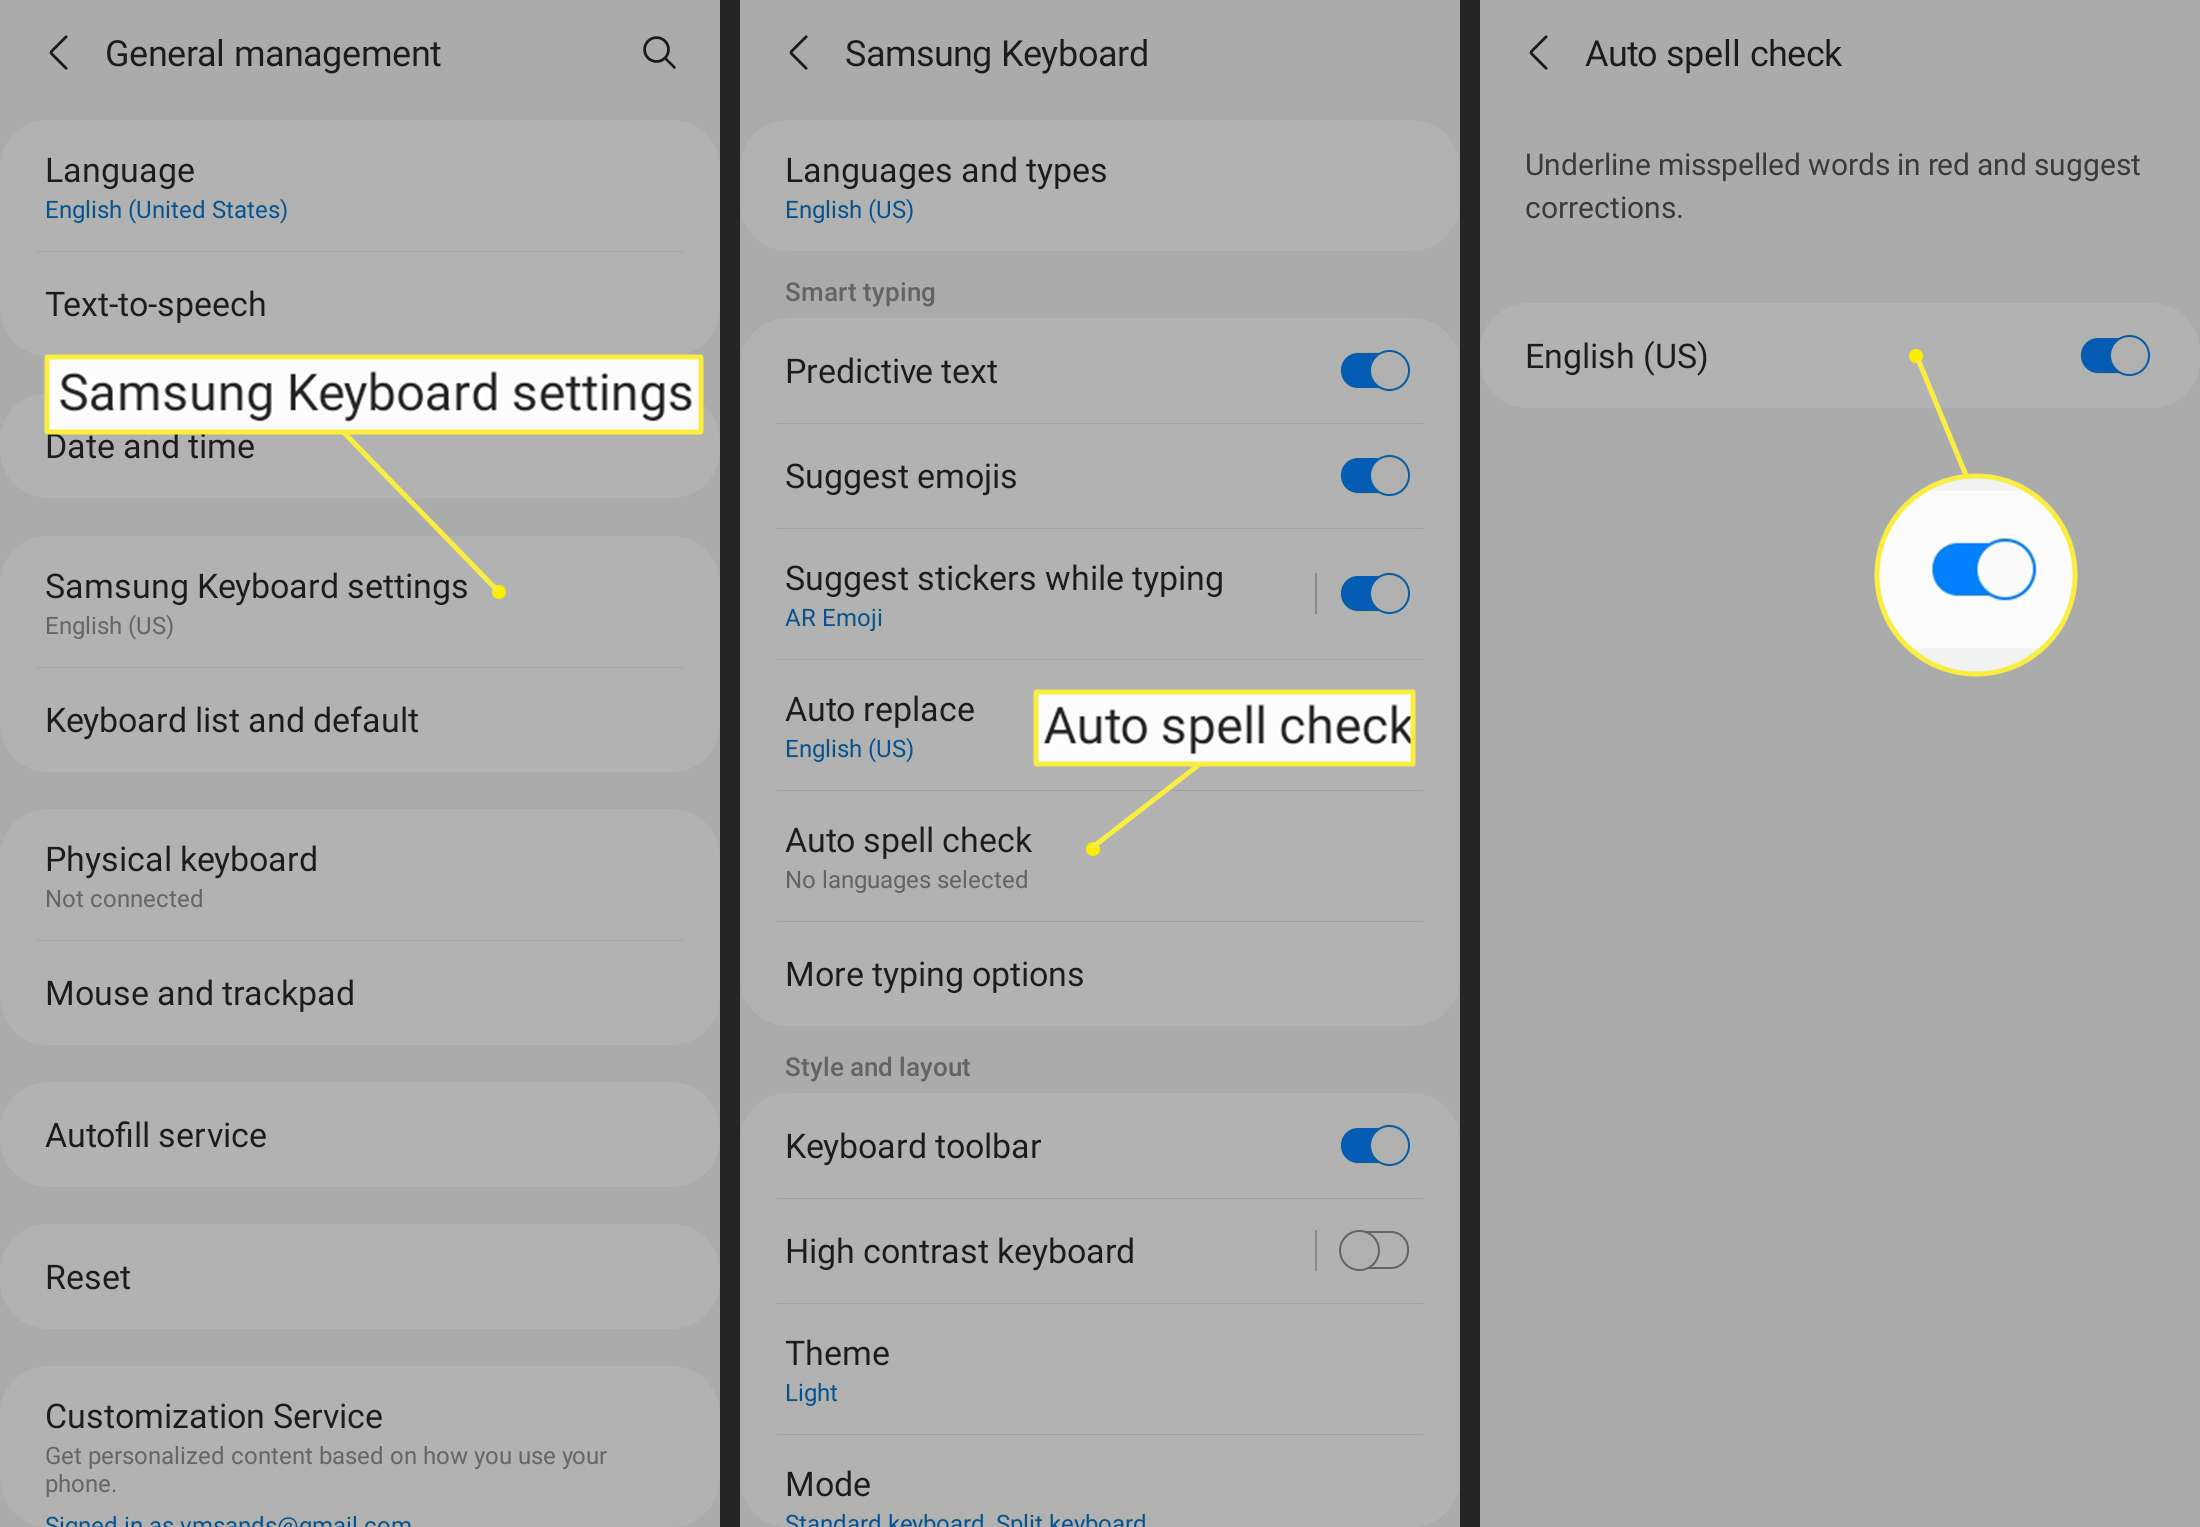 Samsung Keyboard settings > Auto spell check